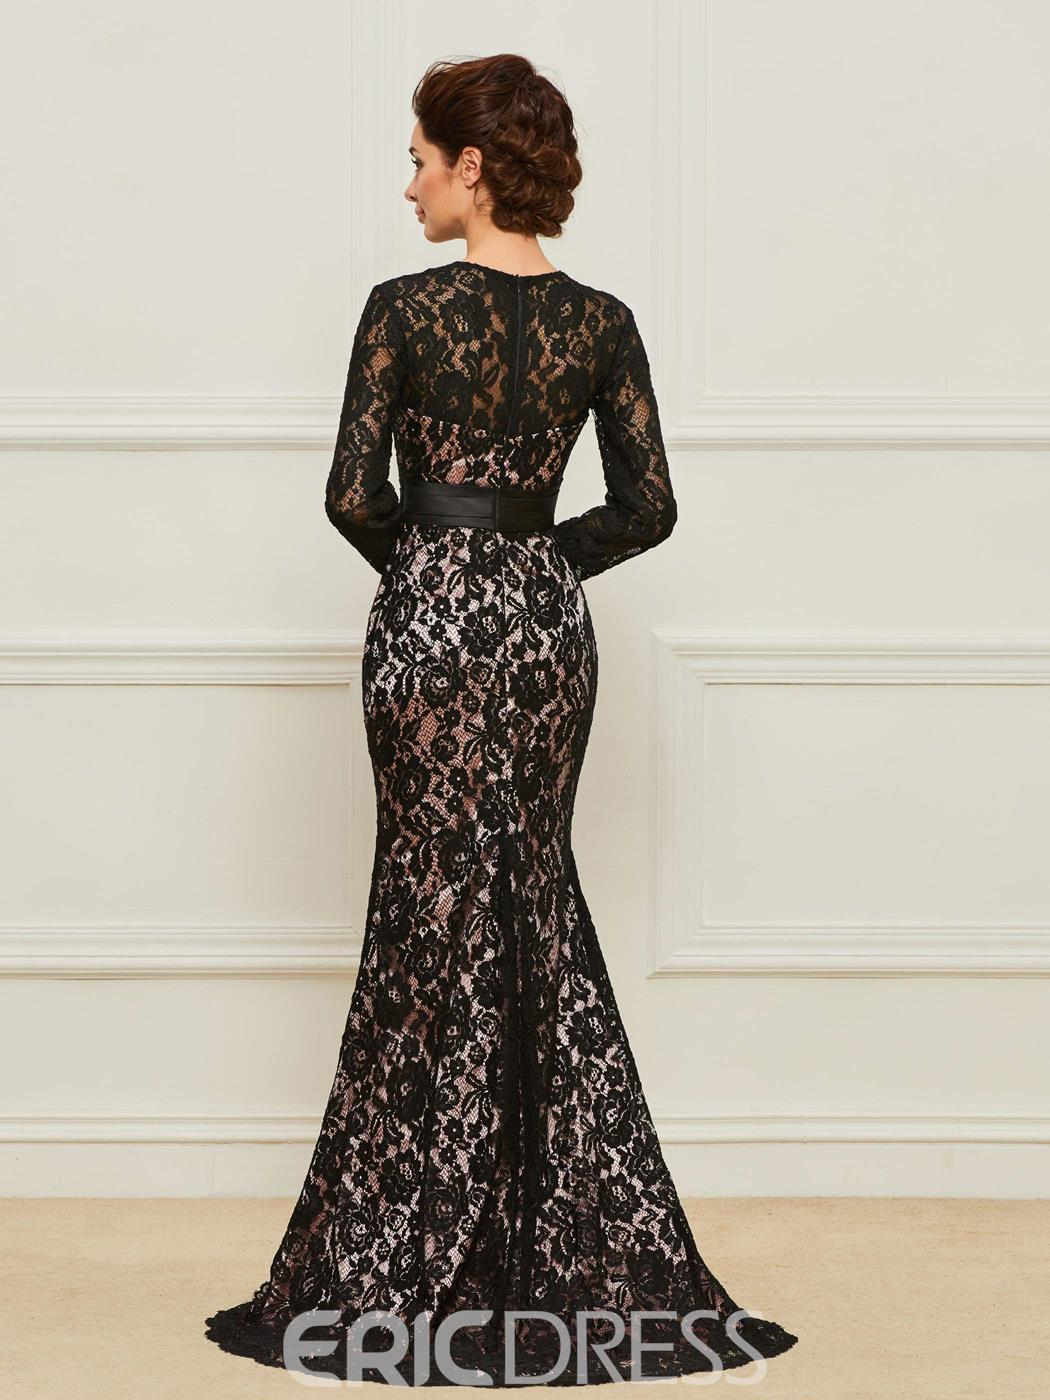 Ericdress Long Sleeve Mermaid Lace Mother of the Bride Dress